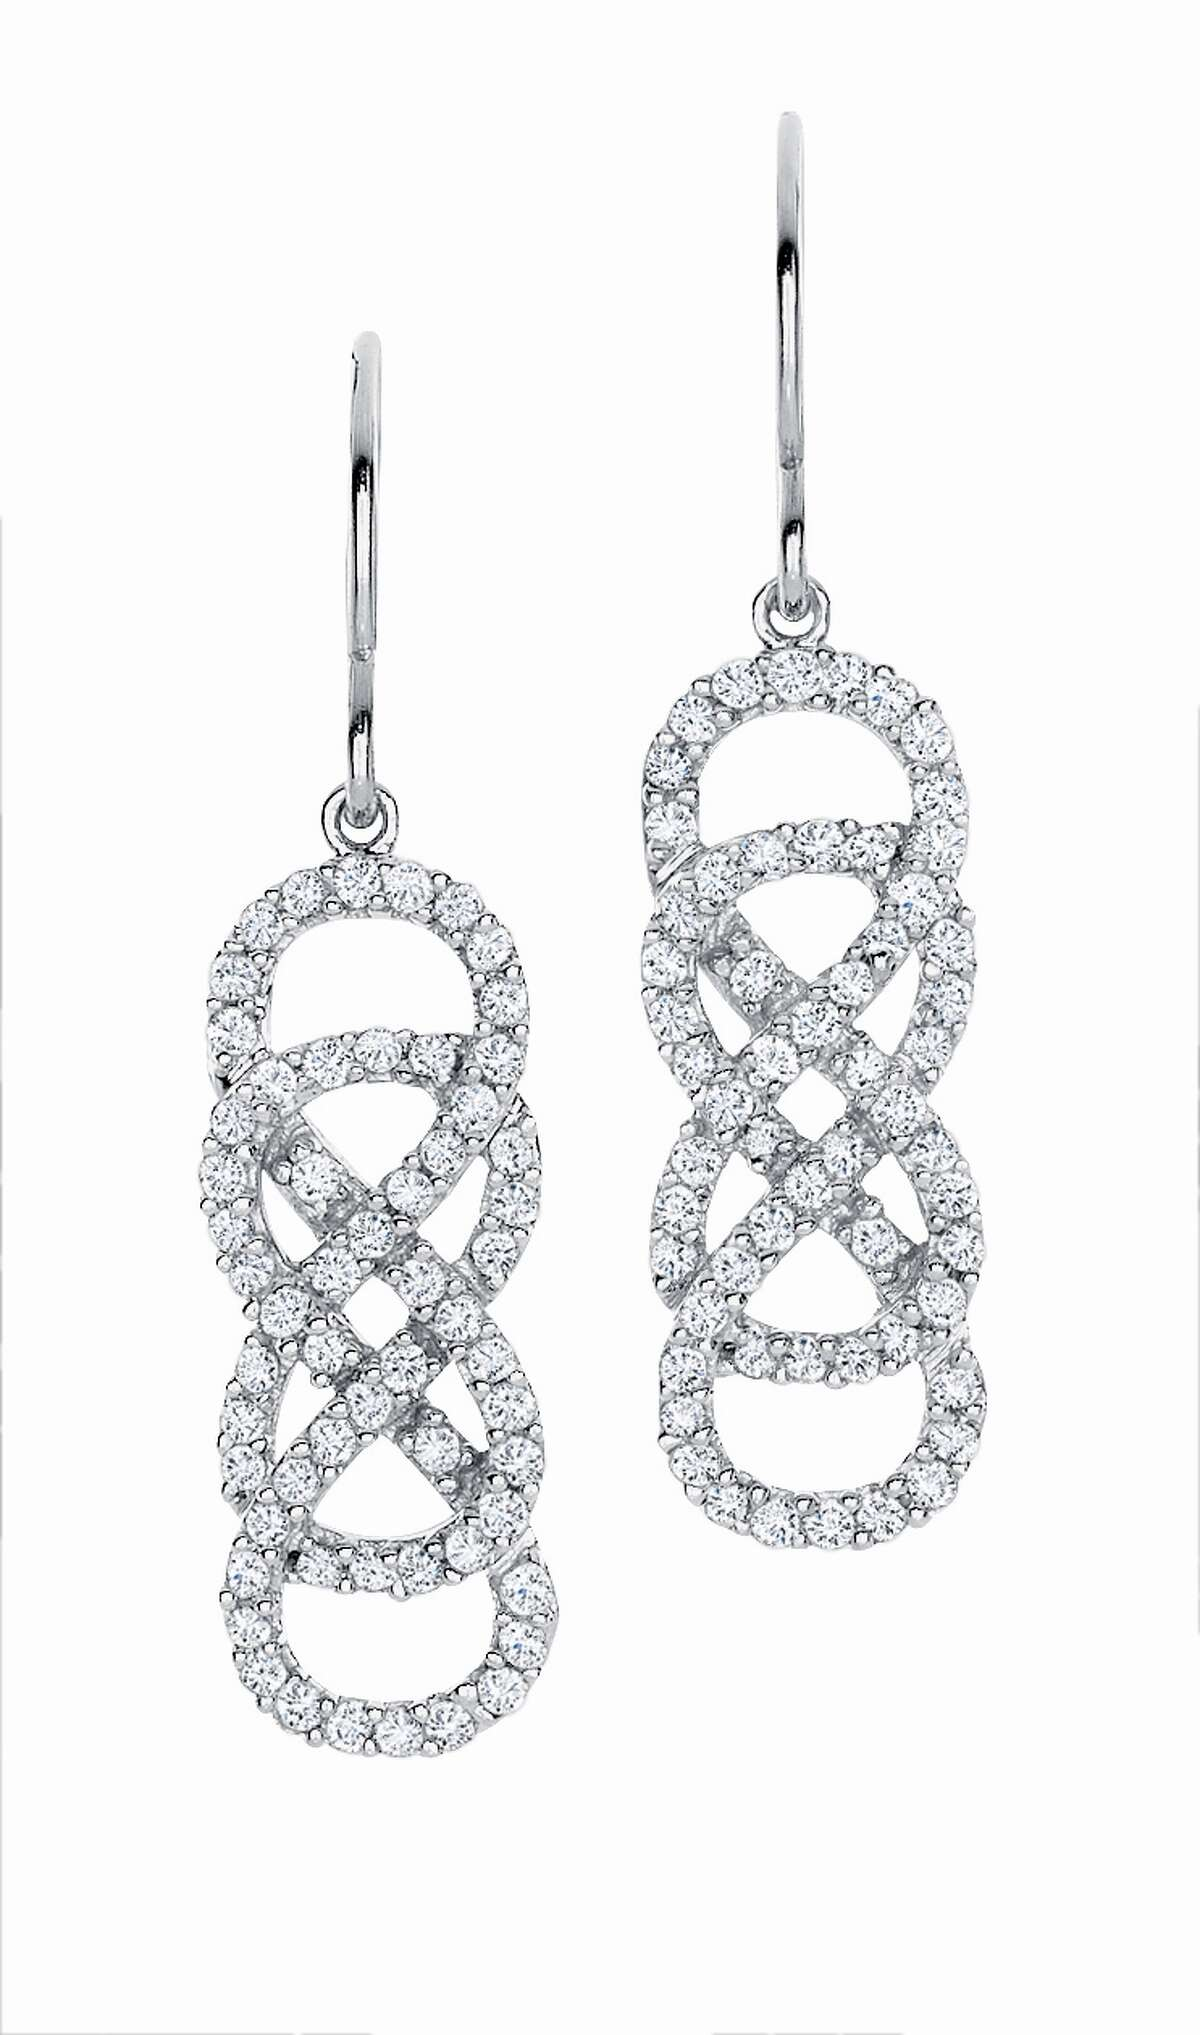 INFINITY X INFINITY jewelry collection, available exclusively at Helzberg Diamonds. These earrings are $1299.99.